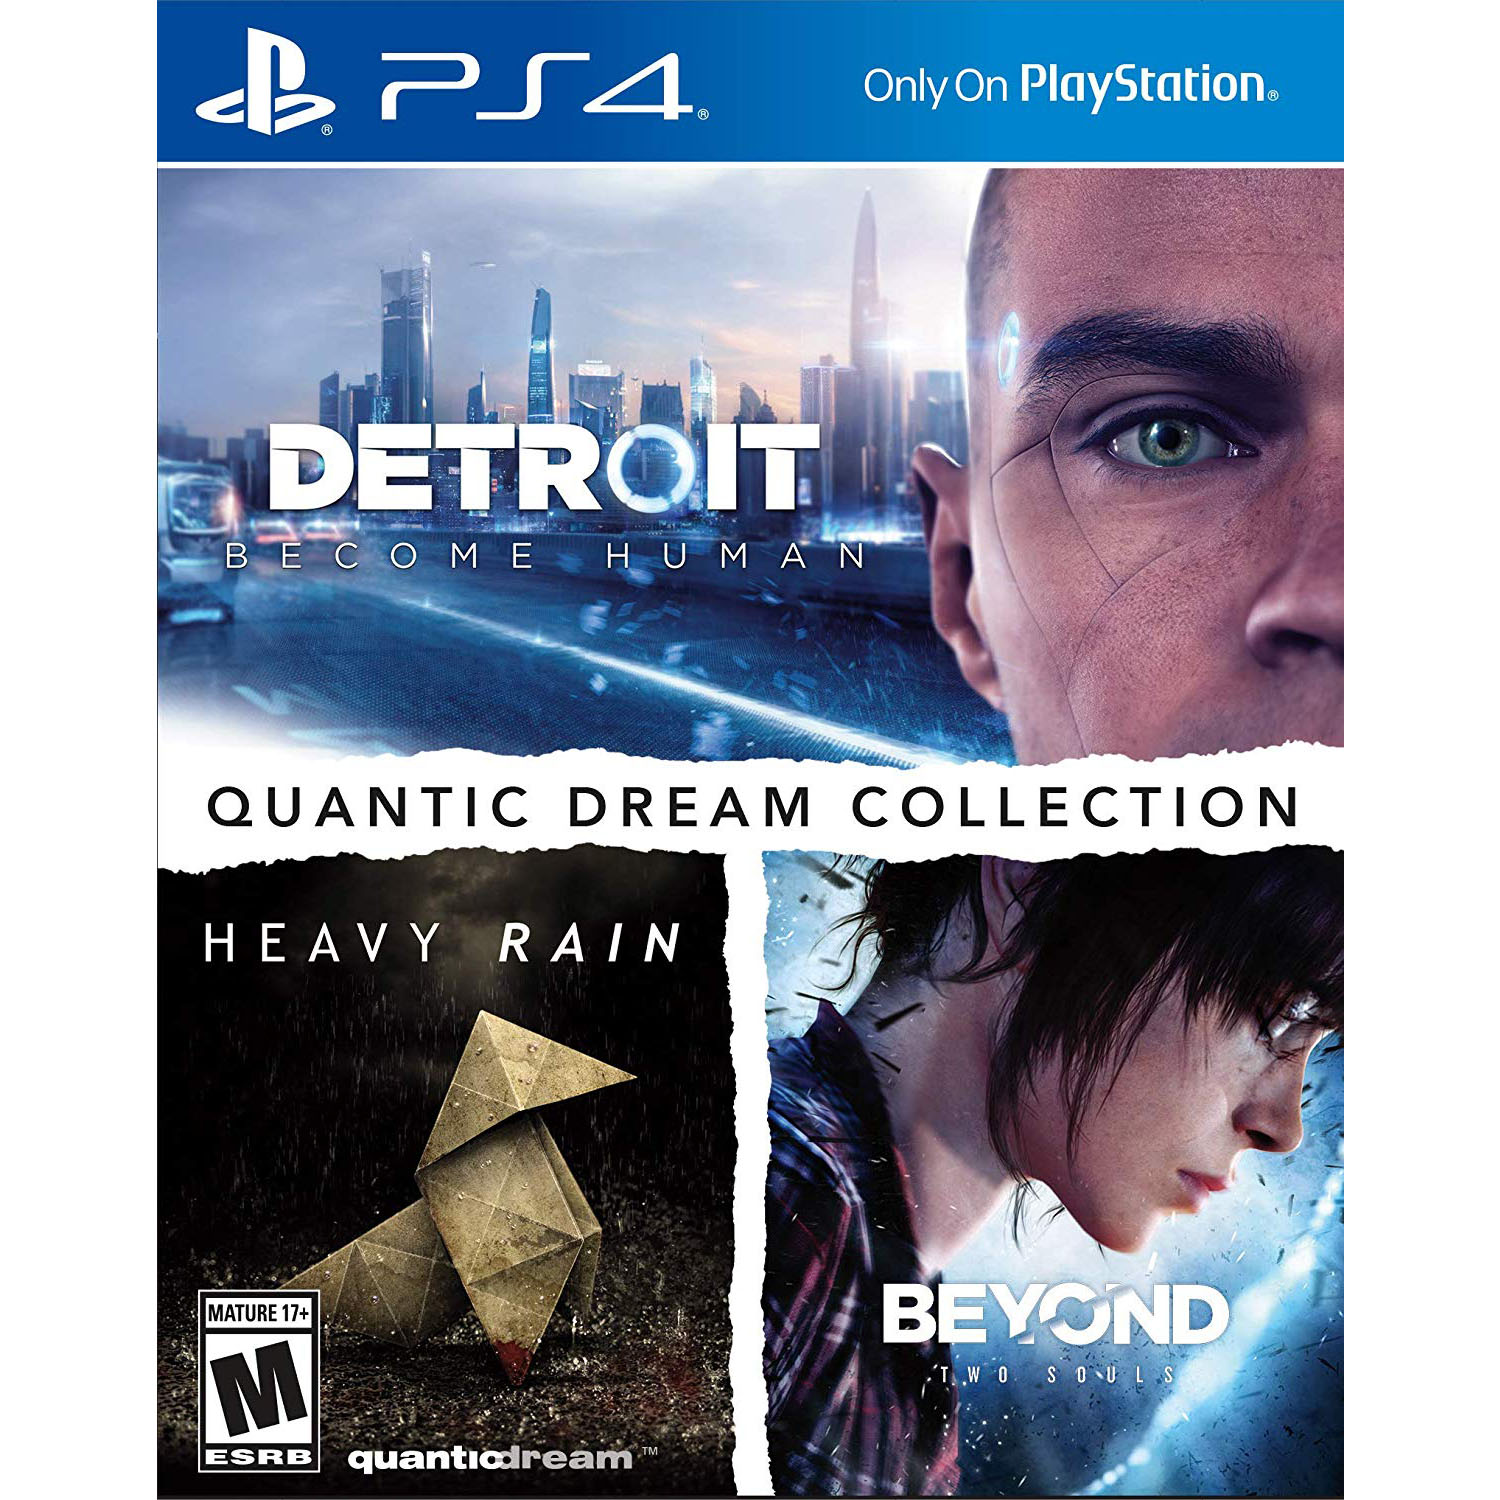 Quantic Dream Collection for PlayStation 4 by Sony